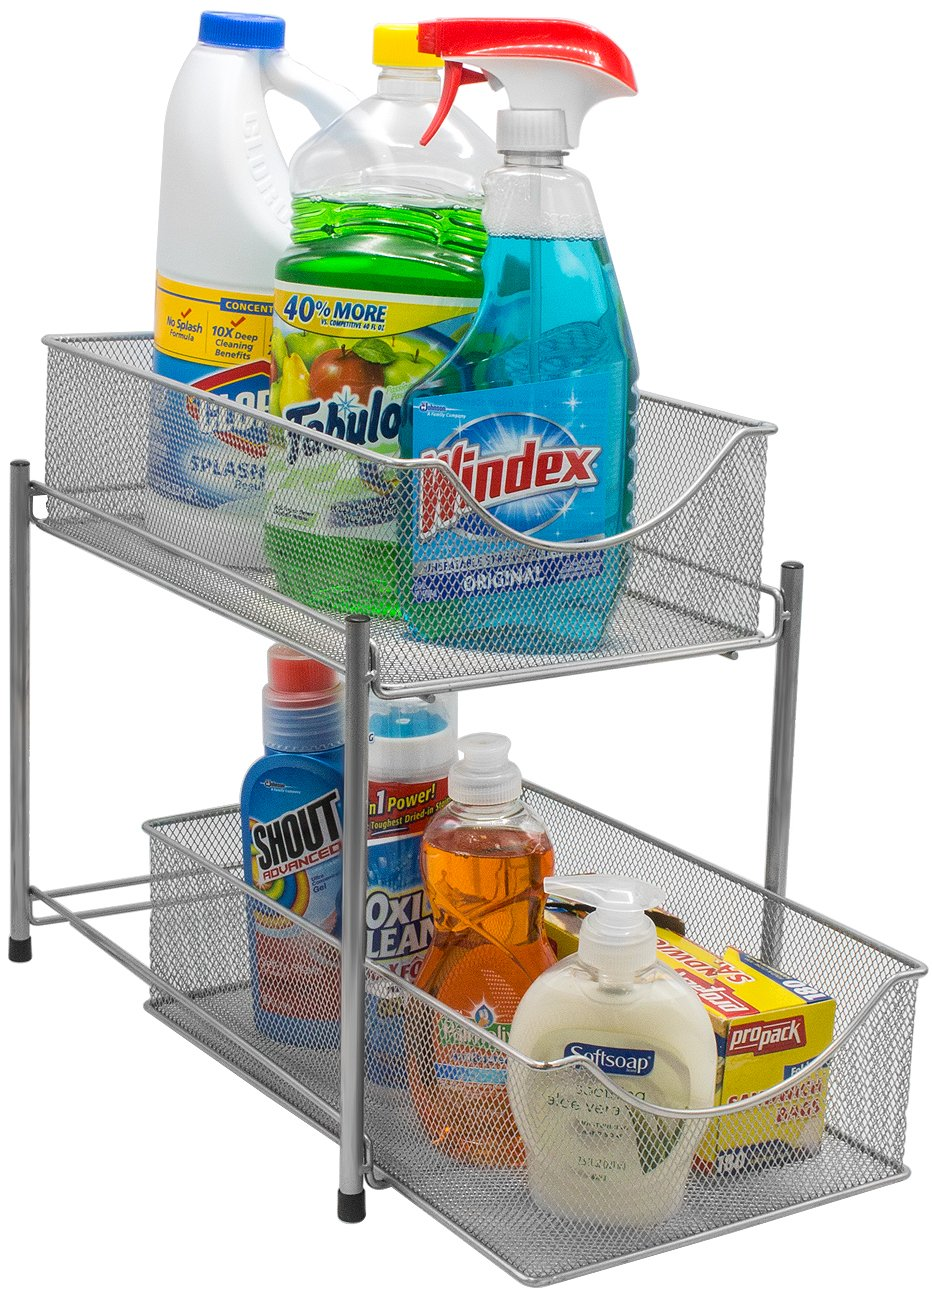 Sorbus 2 Tier Organizer Baskets with Mesh Sliding Drawers, Ideal Cabinet, Countertop, Pantry, Under The Sink, and Desktop Organizer for Bathroom,Kitchen, Office, etc.Made of Steel (Silver) by Sorbus